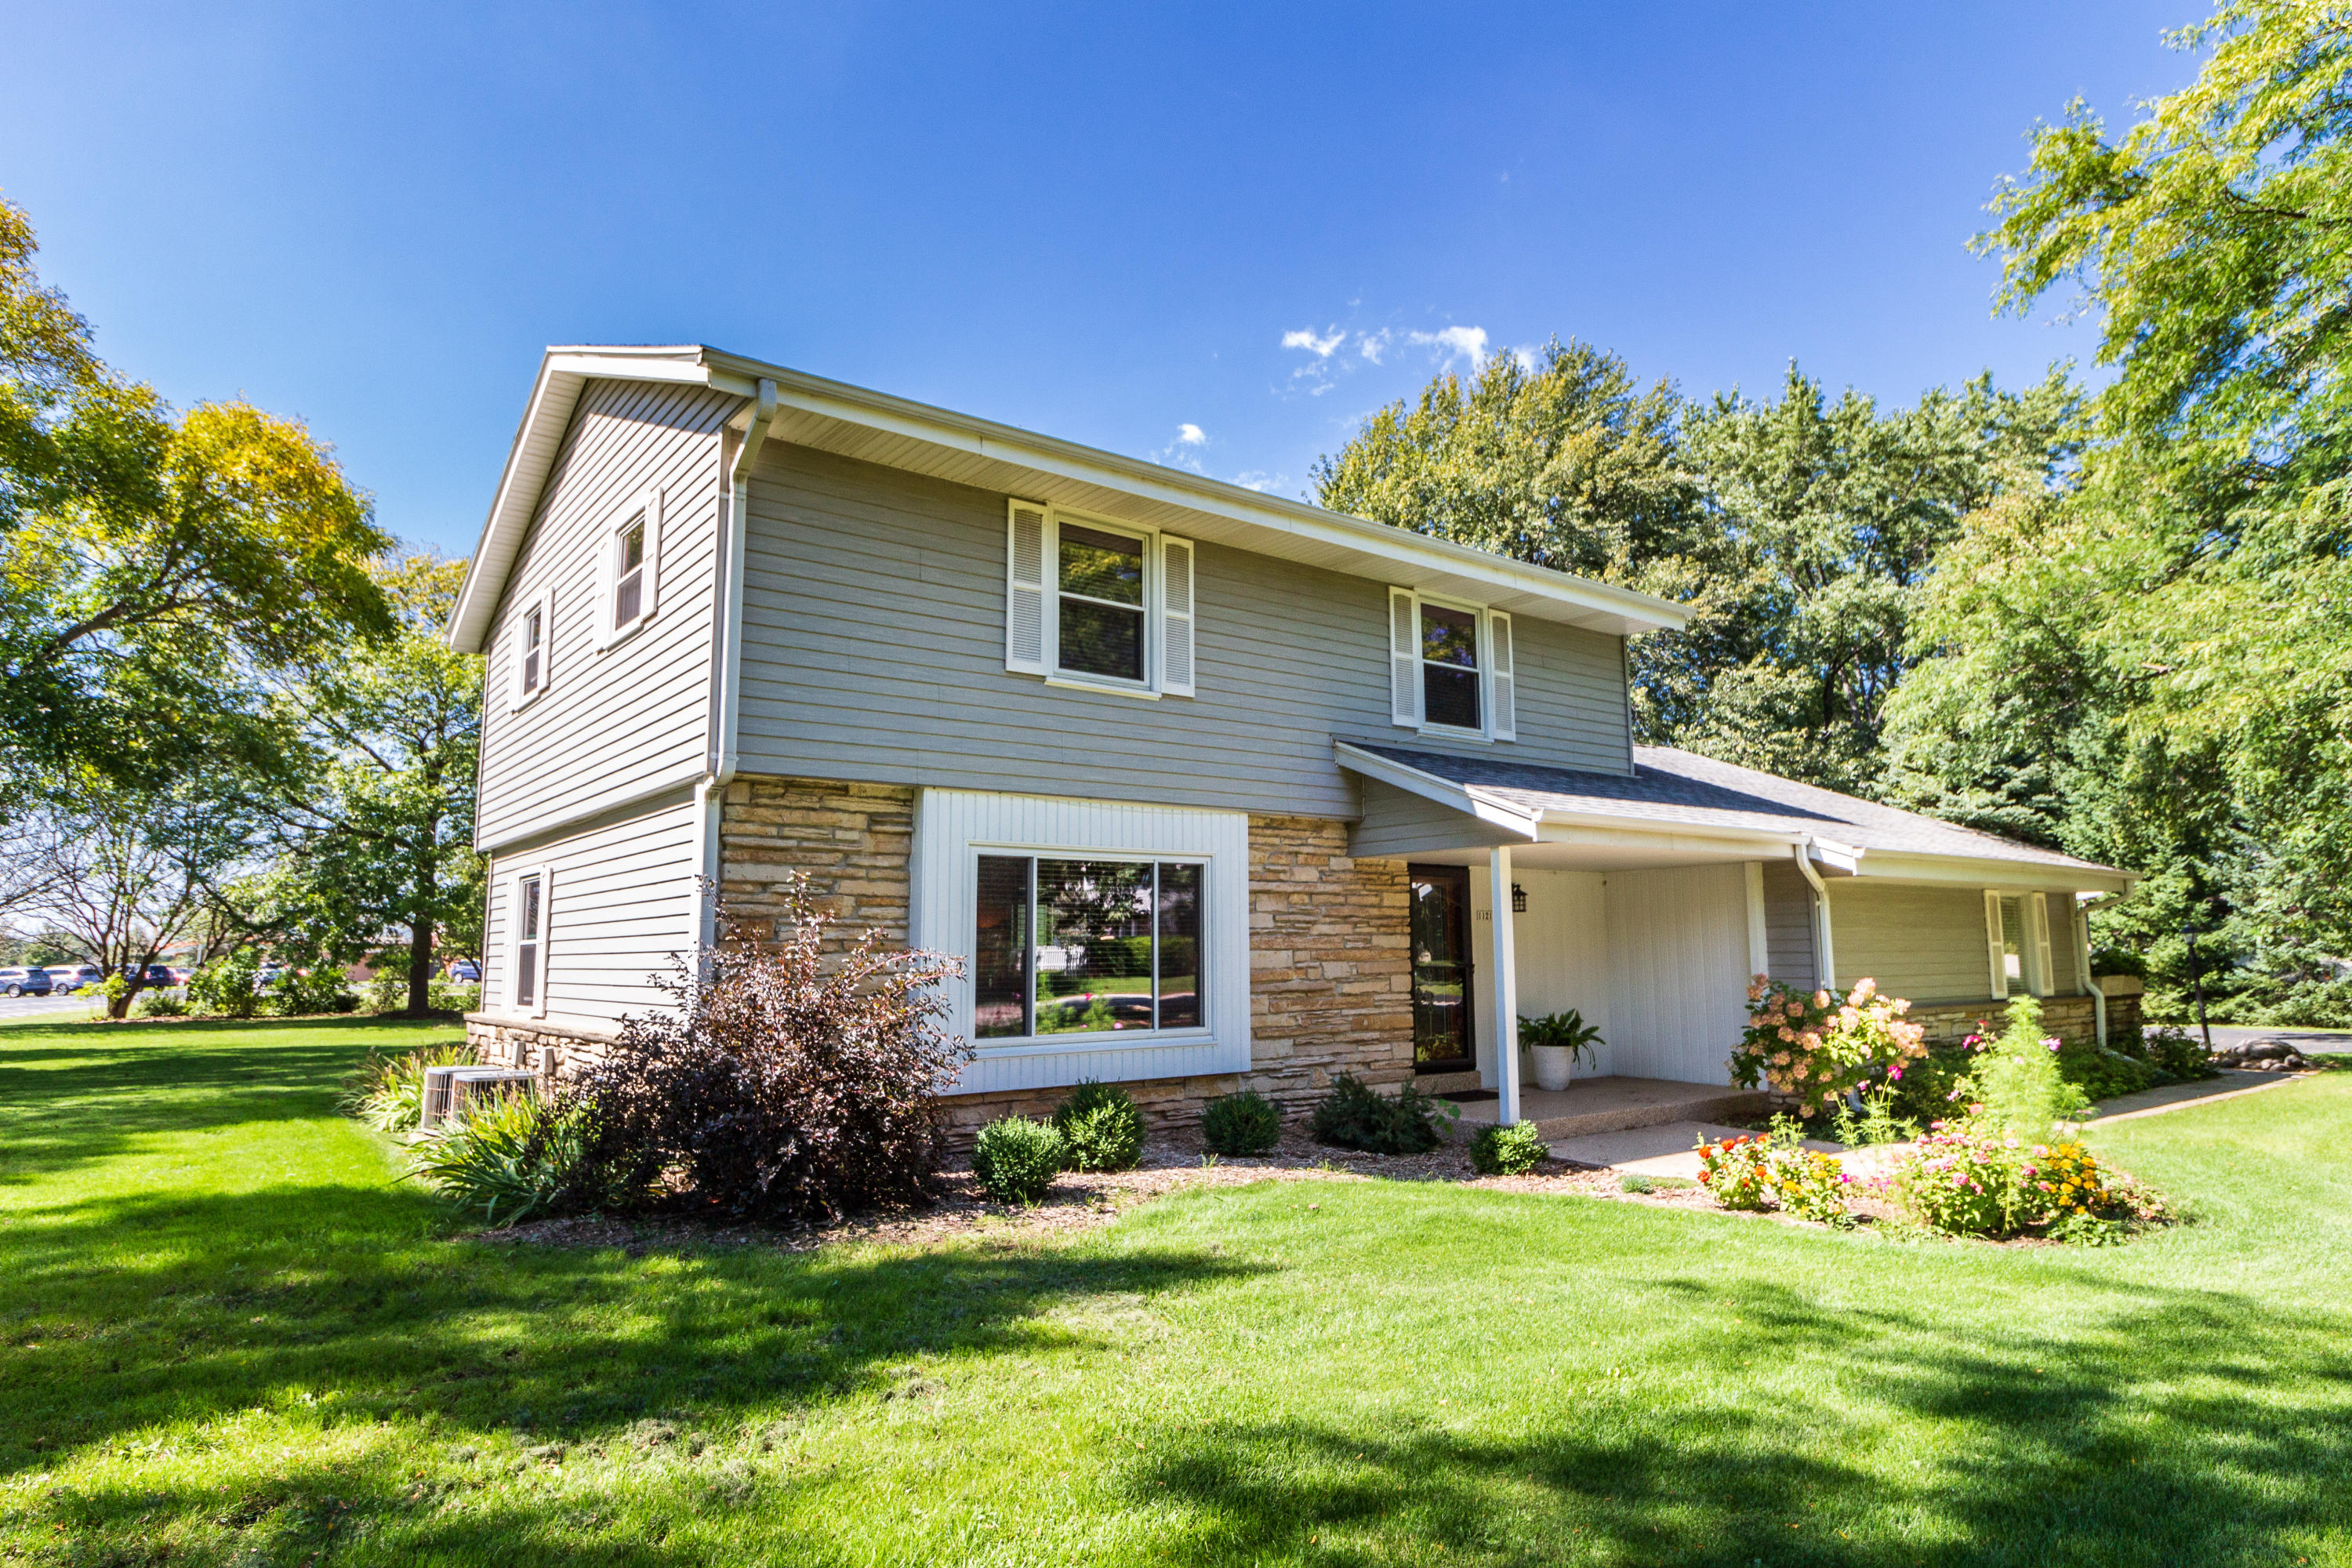 11213 N Country View Dr, Mequon, WI 53092